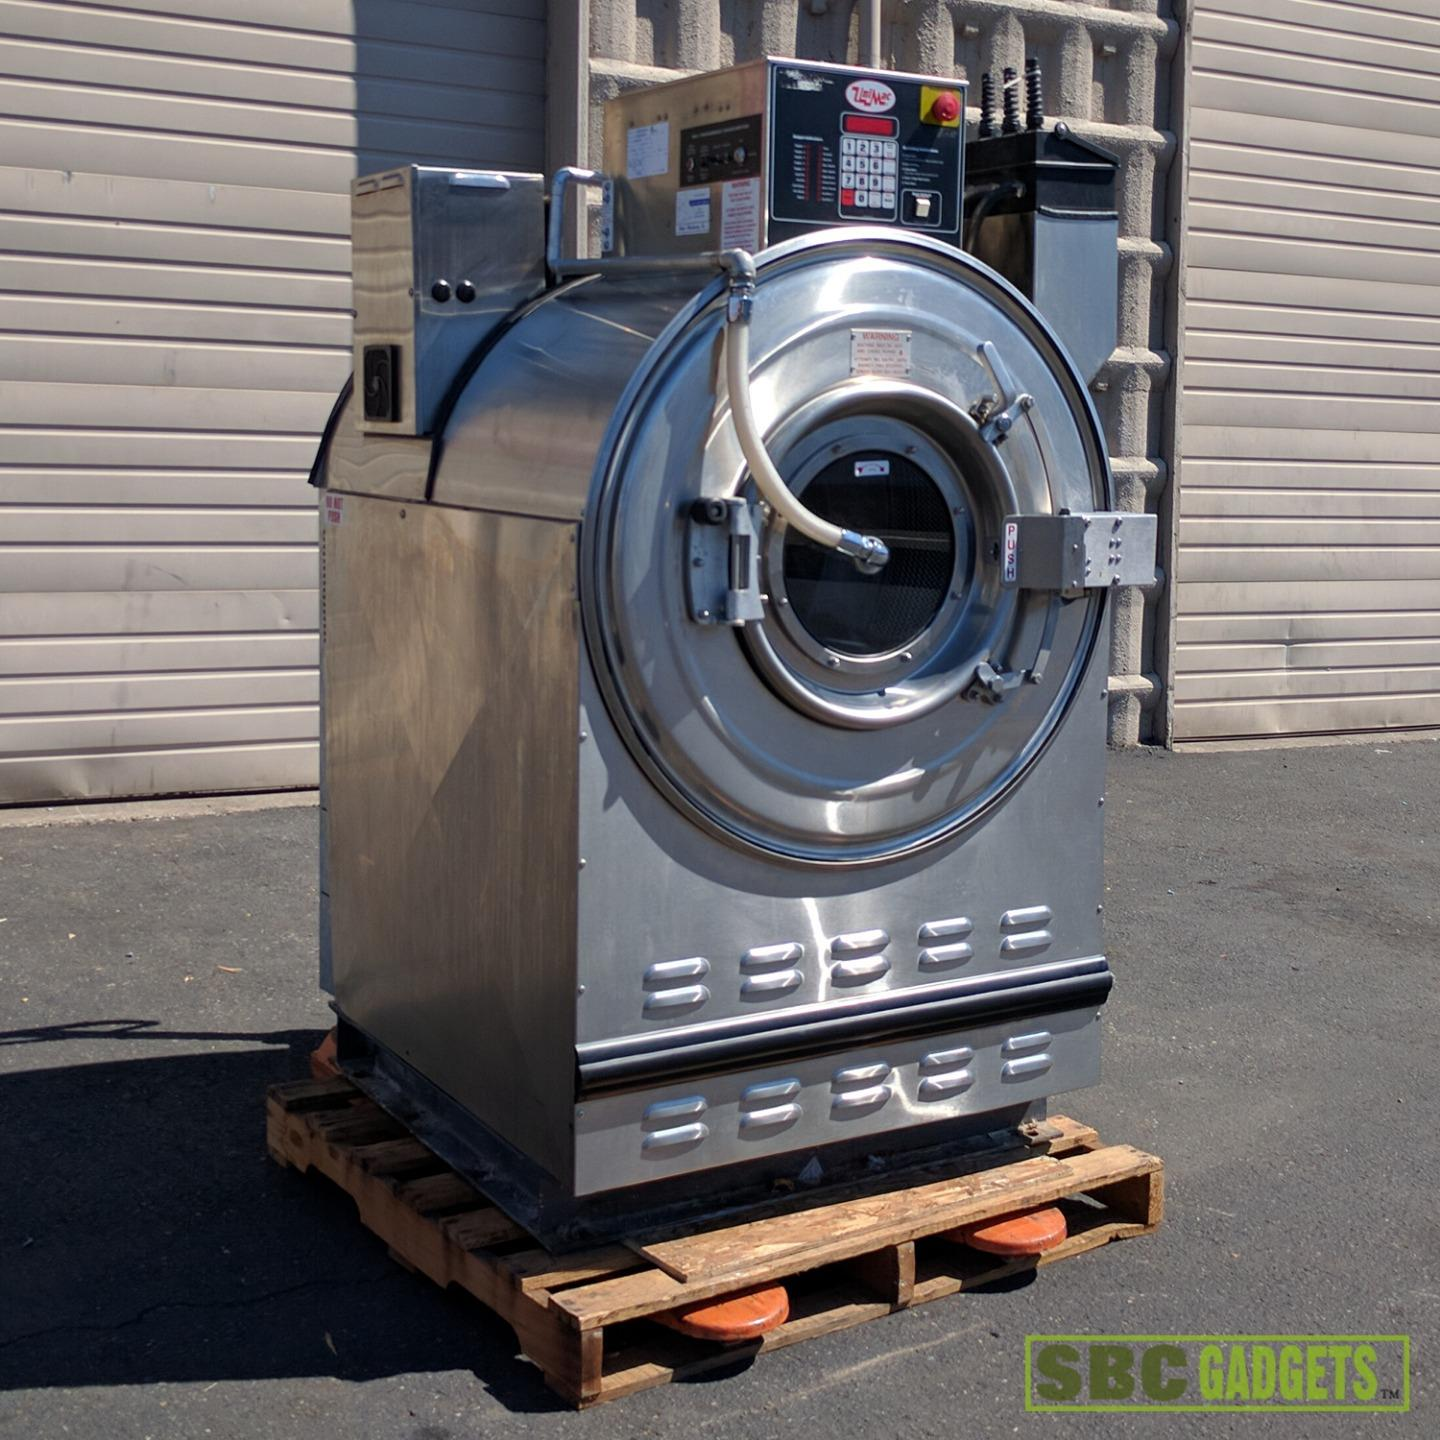 60 Pound Washer ~ Unimac commercial washer max load lbs model